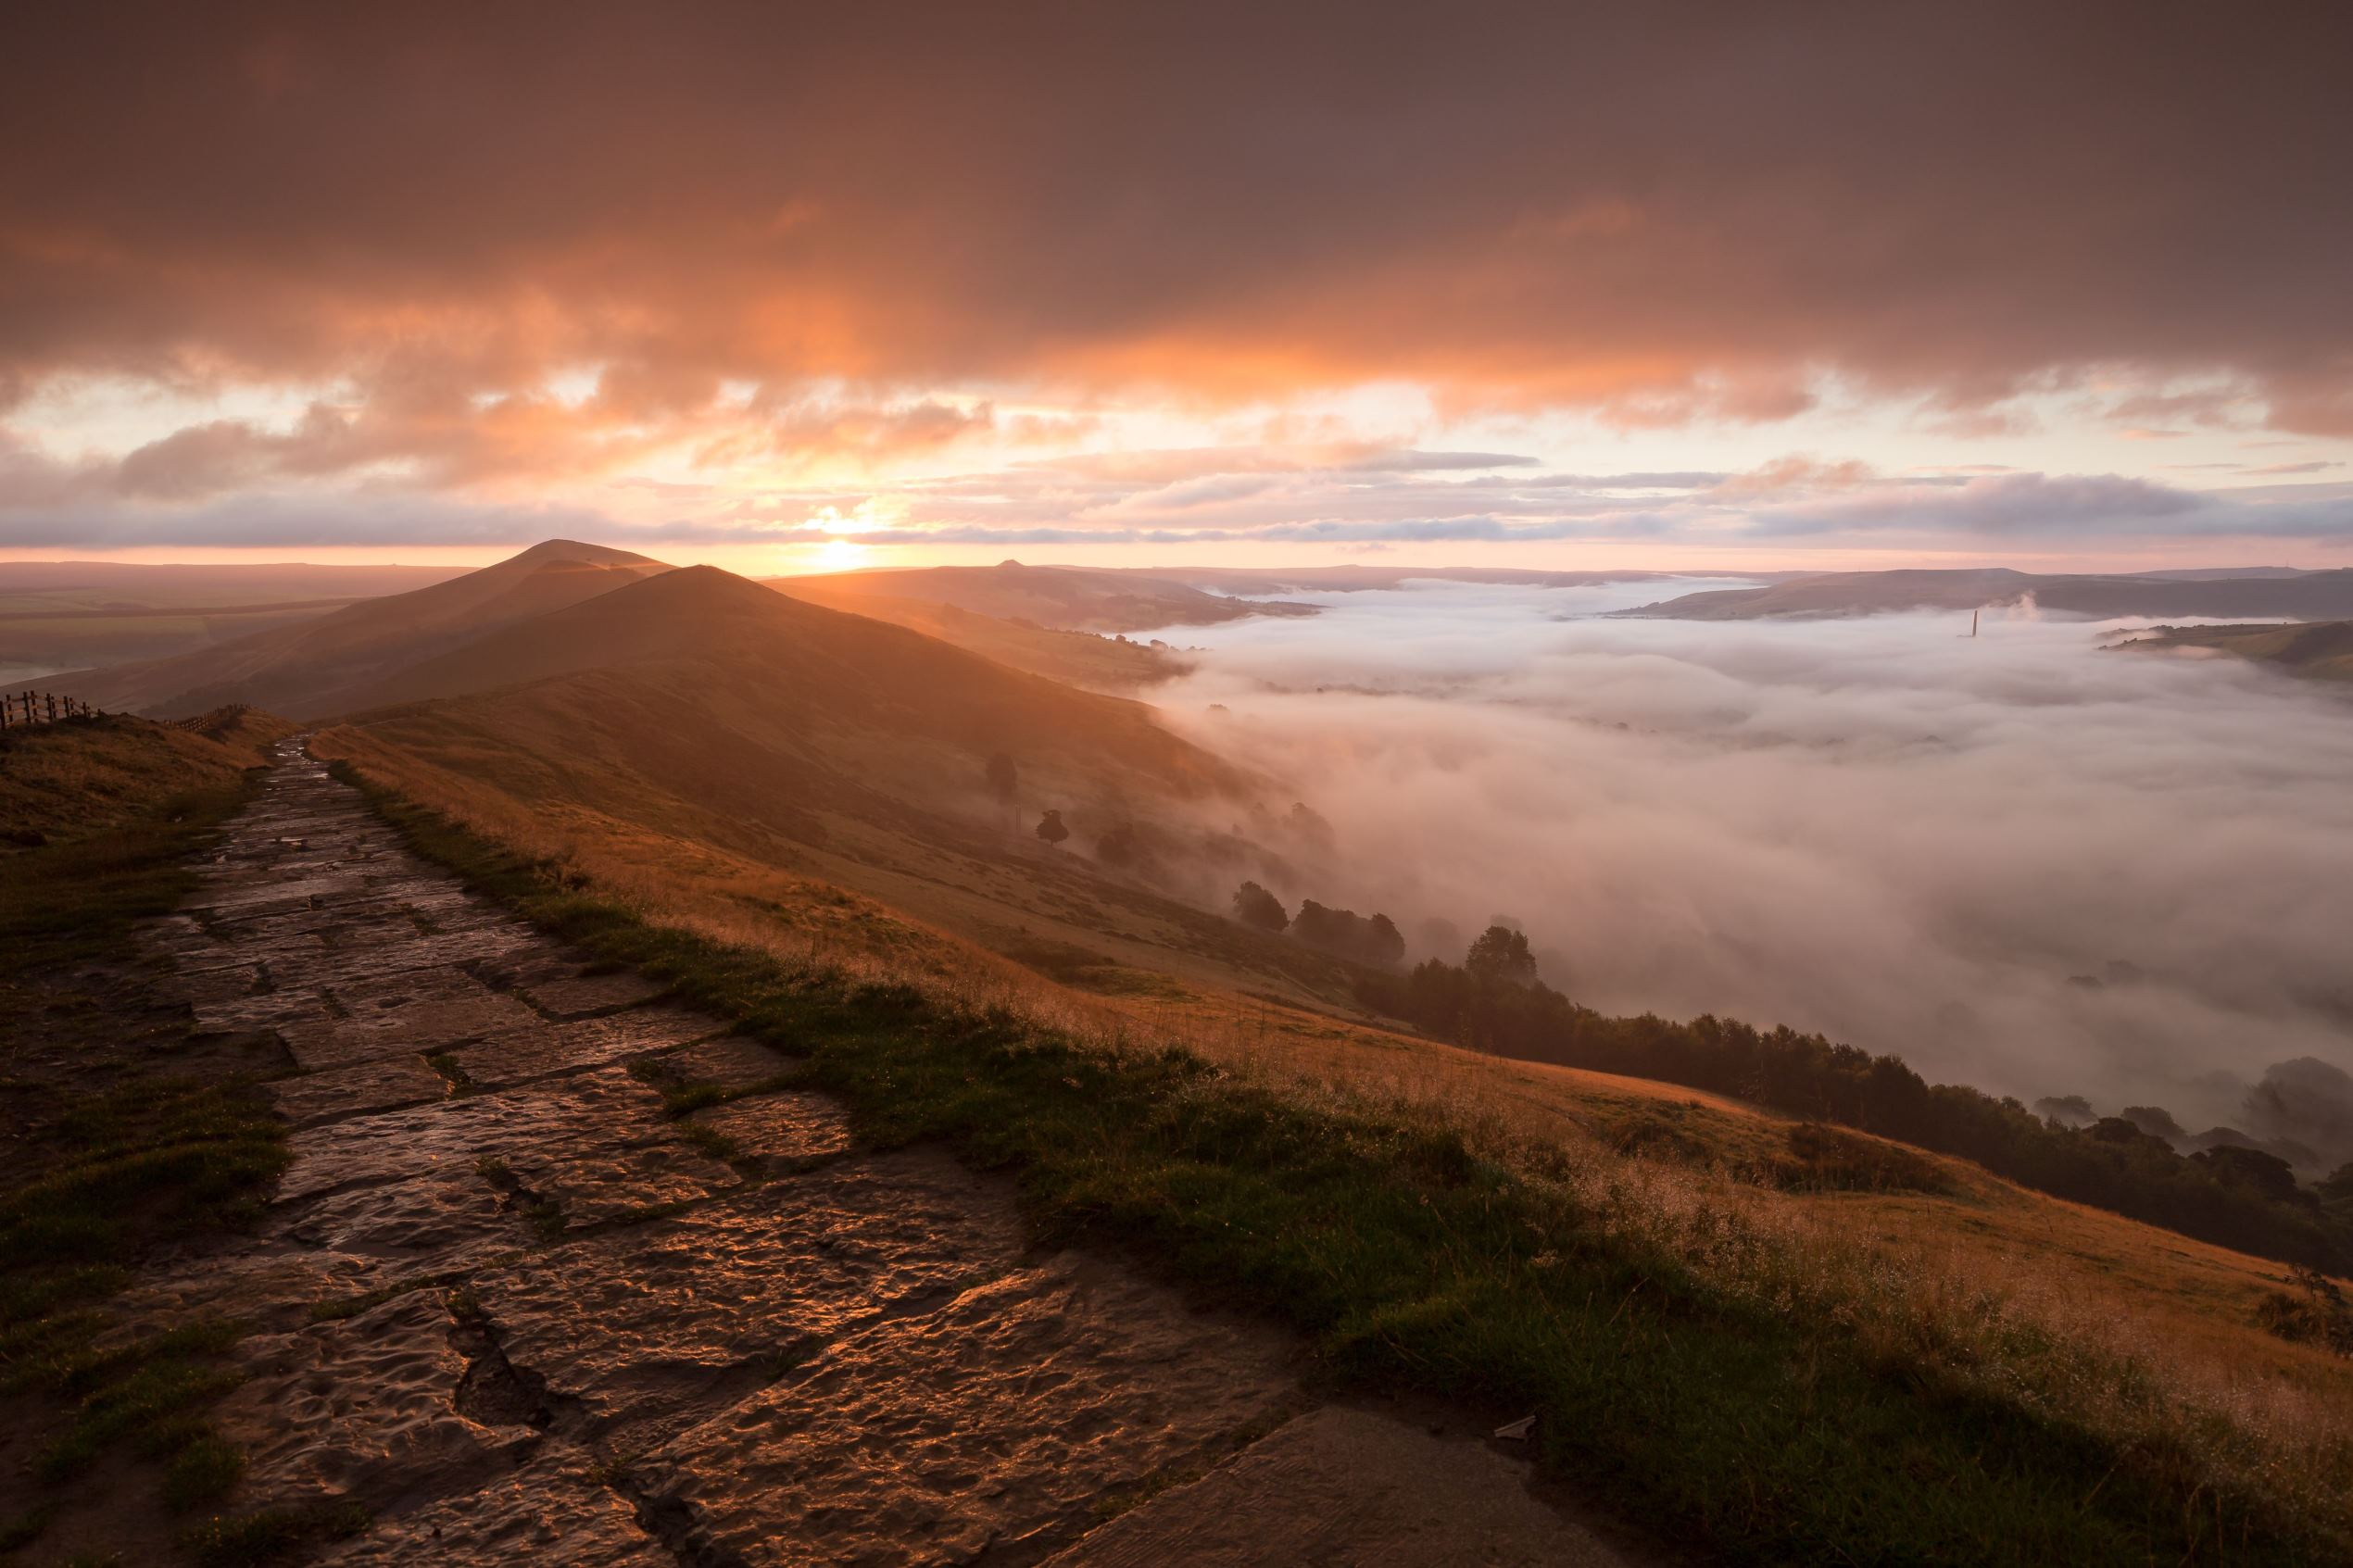 Слайд 79 из 86: Cloud inversion taken at Sunrise in Mam Tor, Derbyshire, UK Cloud inversion at sunrise, Mam Tor, Derbyshire